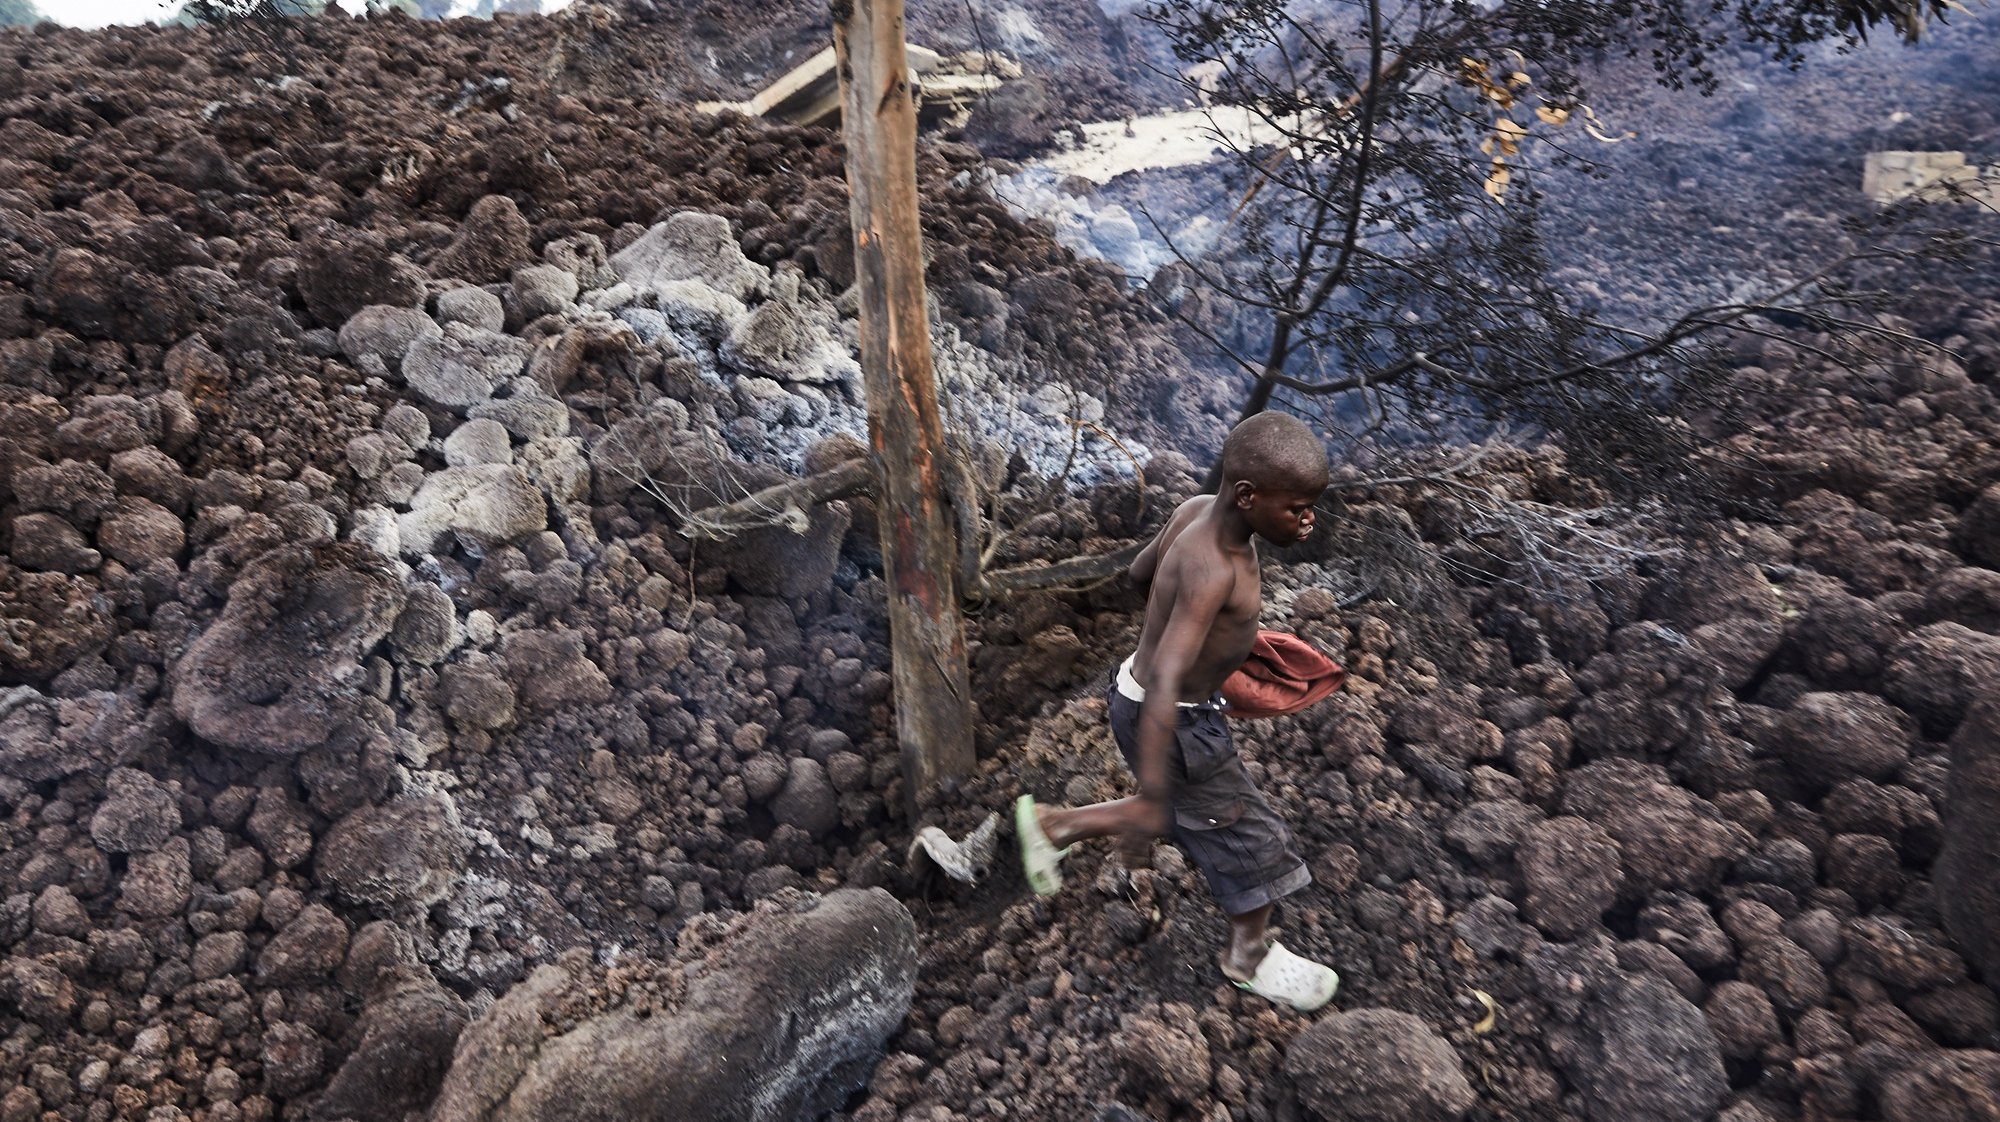 epa09227820 A Congolese boy in the neighbourhood of Buhene walks on piles of lava in the aftermath of a volcanic eruption in Goma, Democratic Republic of Congo, 25 May 2021. One of the planets most active volcanoes Mount Nyiragongo in eastern Democratic Republic of Congo erupted 22 May 2021. According to local journalists, aftershocks from the Nyiragongo volcanic eruption continue in the town of Goma. According to the United Nations children's agency (UNICEF) 25 May 2021 more than 100 children are missing after having been separated from their parents. Foreign countries, like the United Kingdom, have warned their nationals through their embassies of the continuation of seismic activity and cannot rule out further fissures or lava flow.  EPA/HUGH KINSELLA CUNNINGHAM